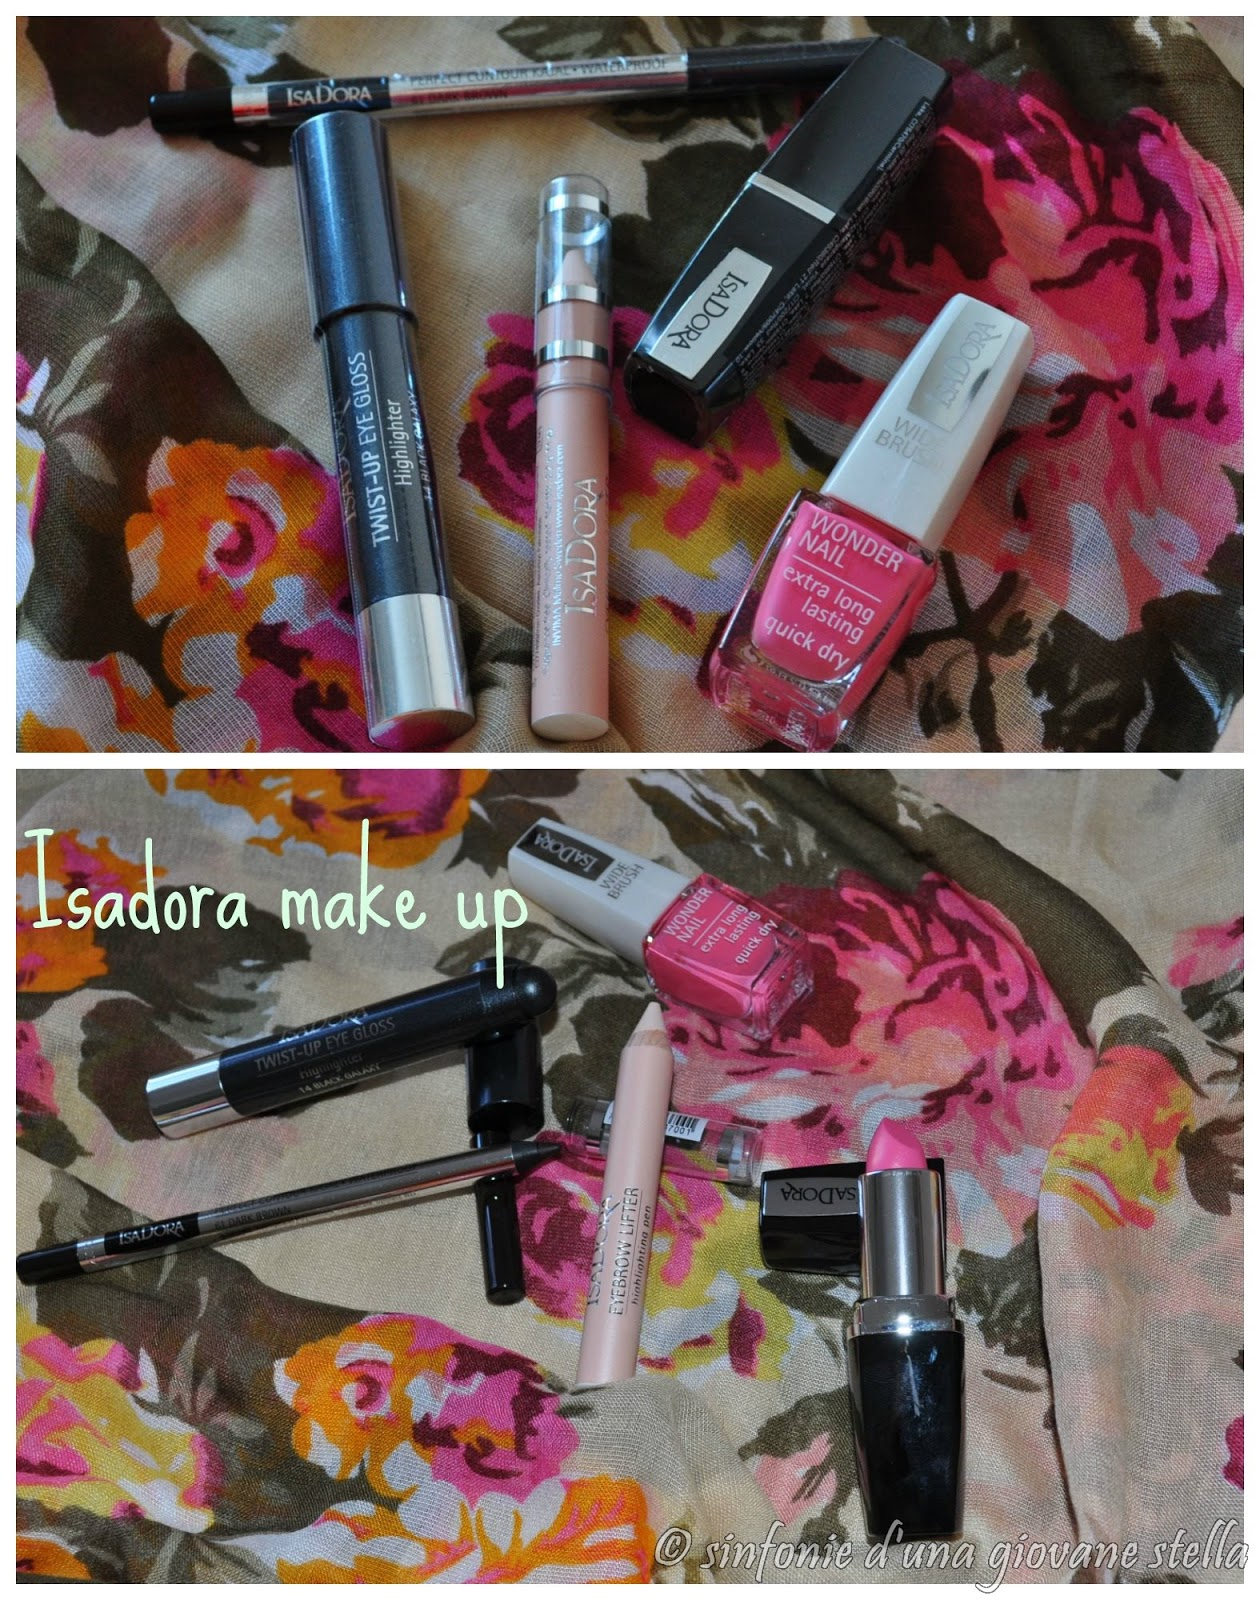 vittorie & haul ● isadora make up vincita contest